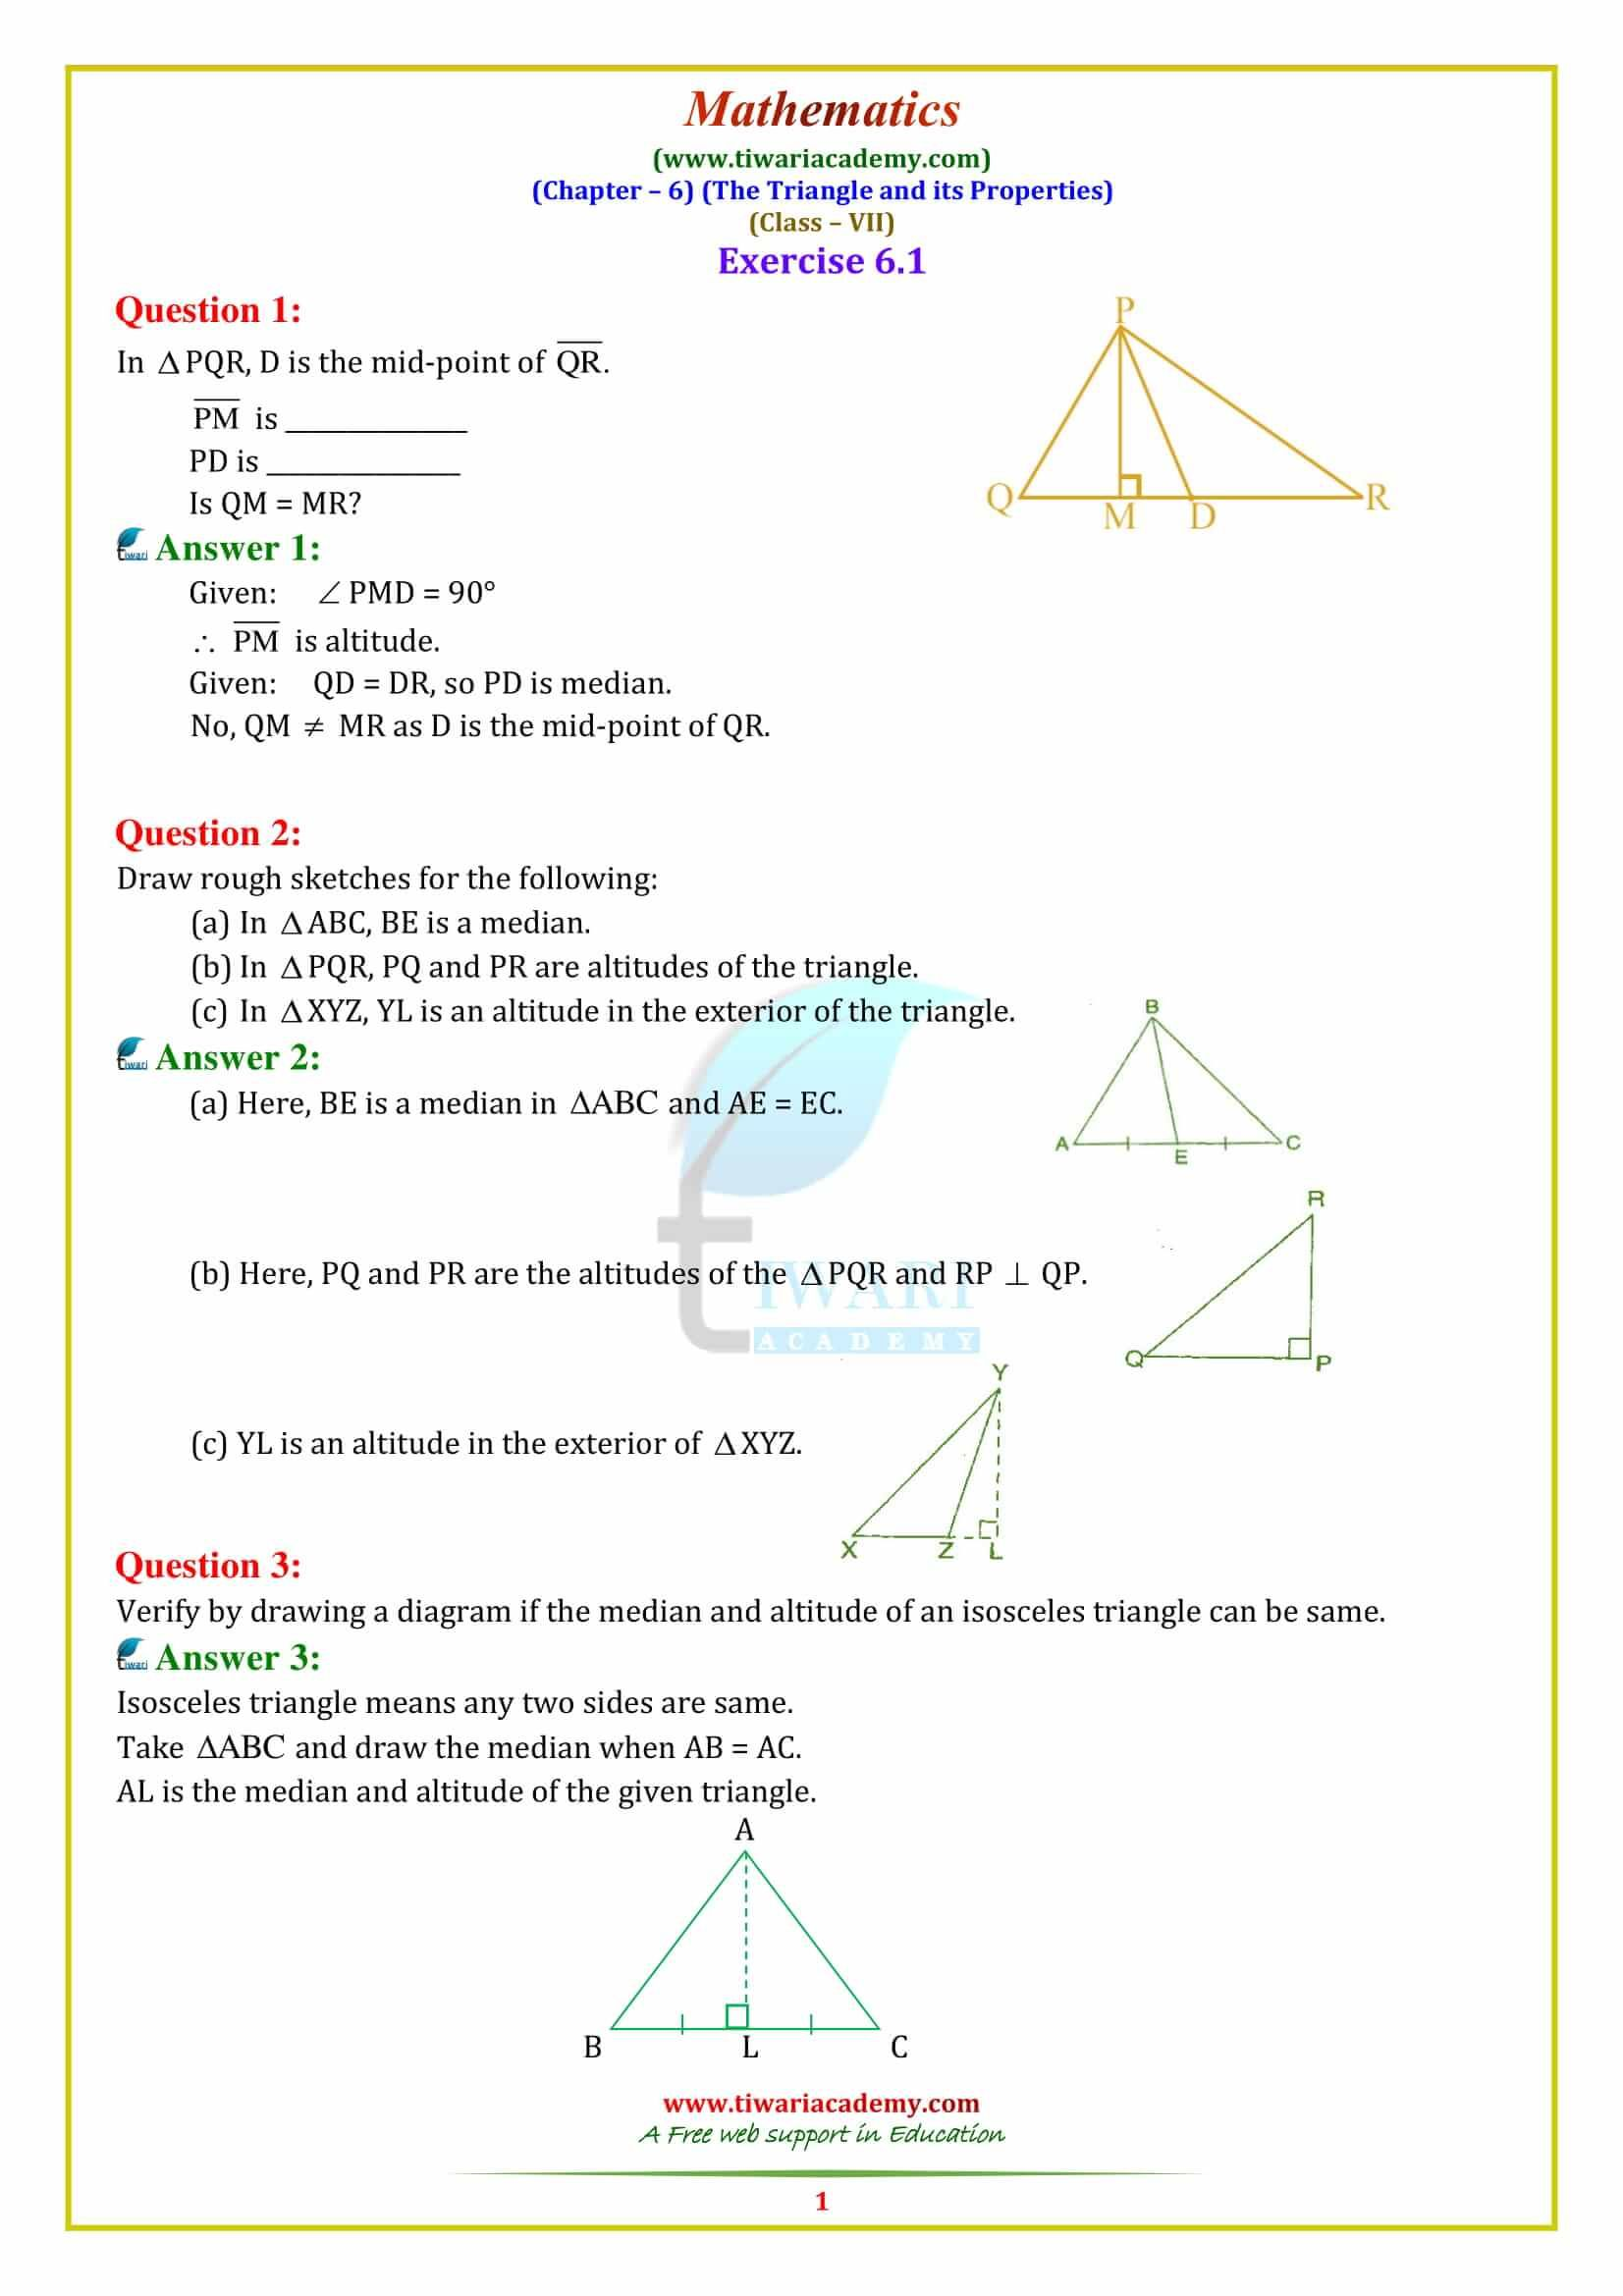 Cbse Ncert Solutions For Class 7 Maths Chapter 6 Triangles And Its Properties In 2020 Math Math Maze Chapter